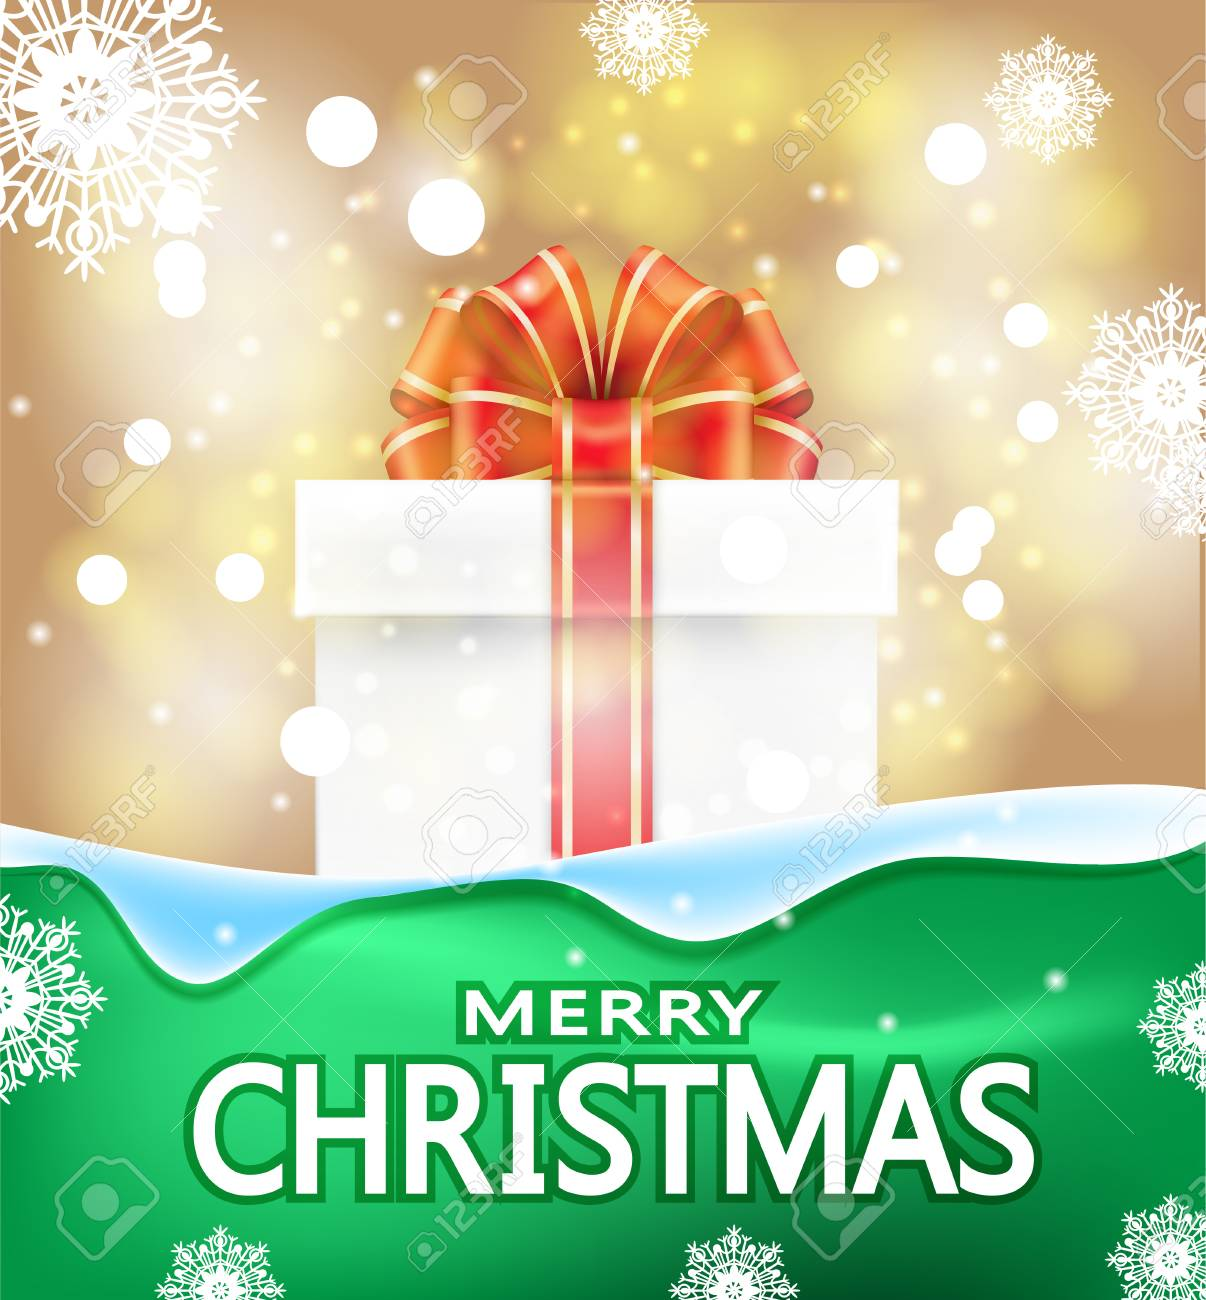 Merry Christmas Gift.Christmas Background With The Words